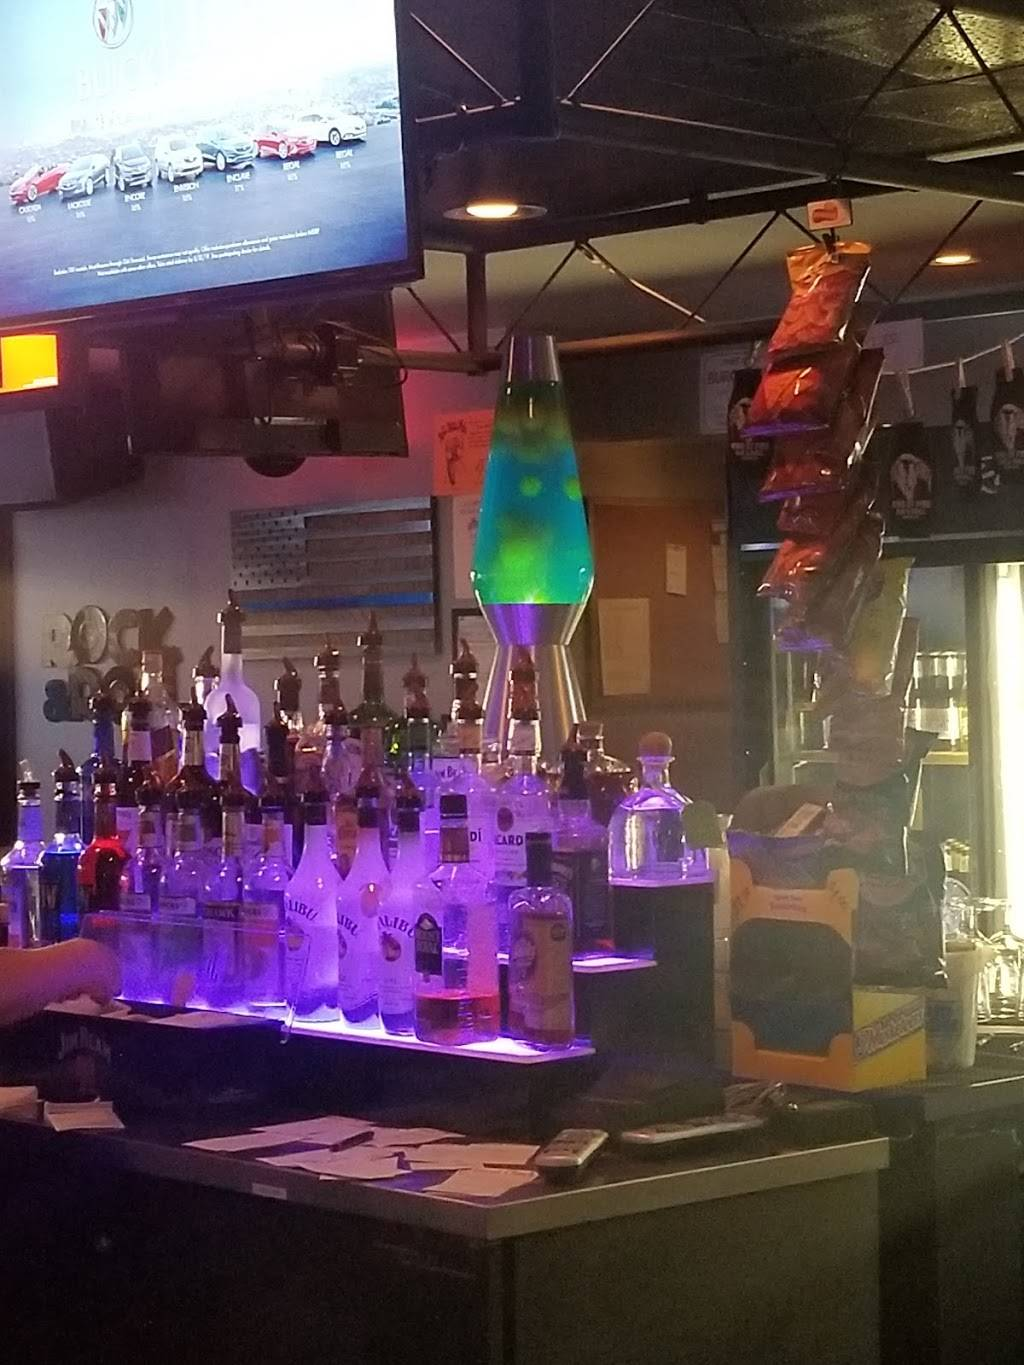 Ring of Fire Bar | restaurant | 6497 County Rd B, Two Rivers, WI 54241, USA | 9204828099 OR +1 920-482-8099